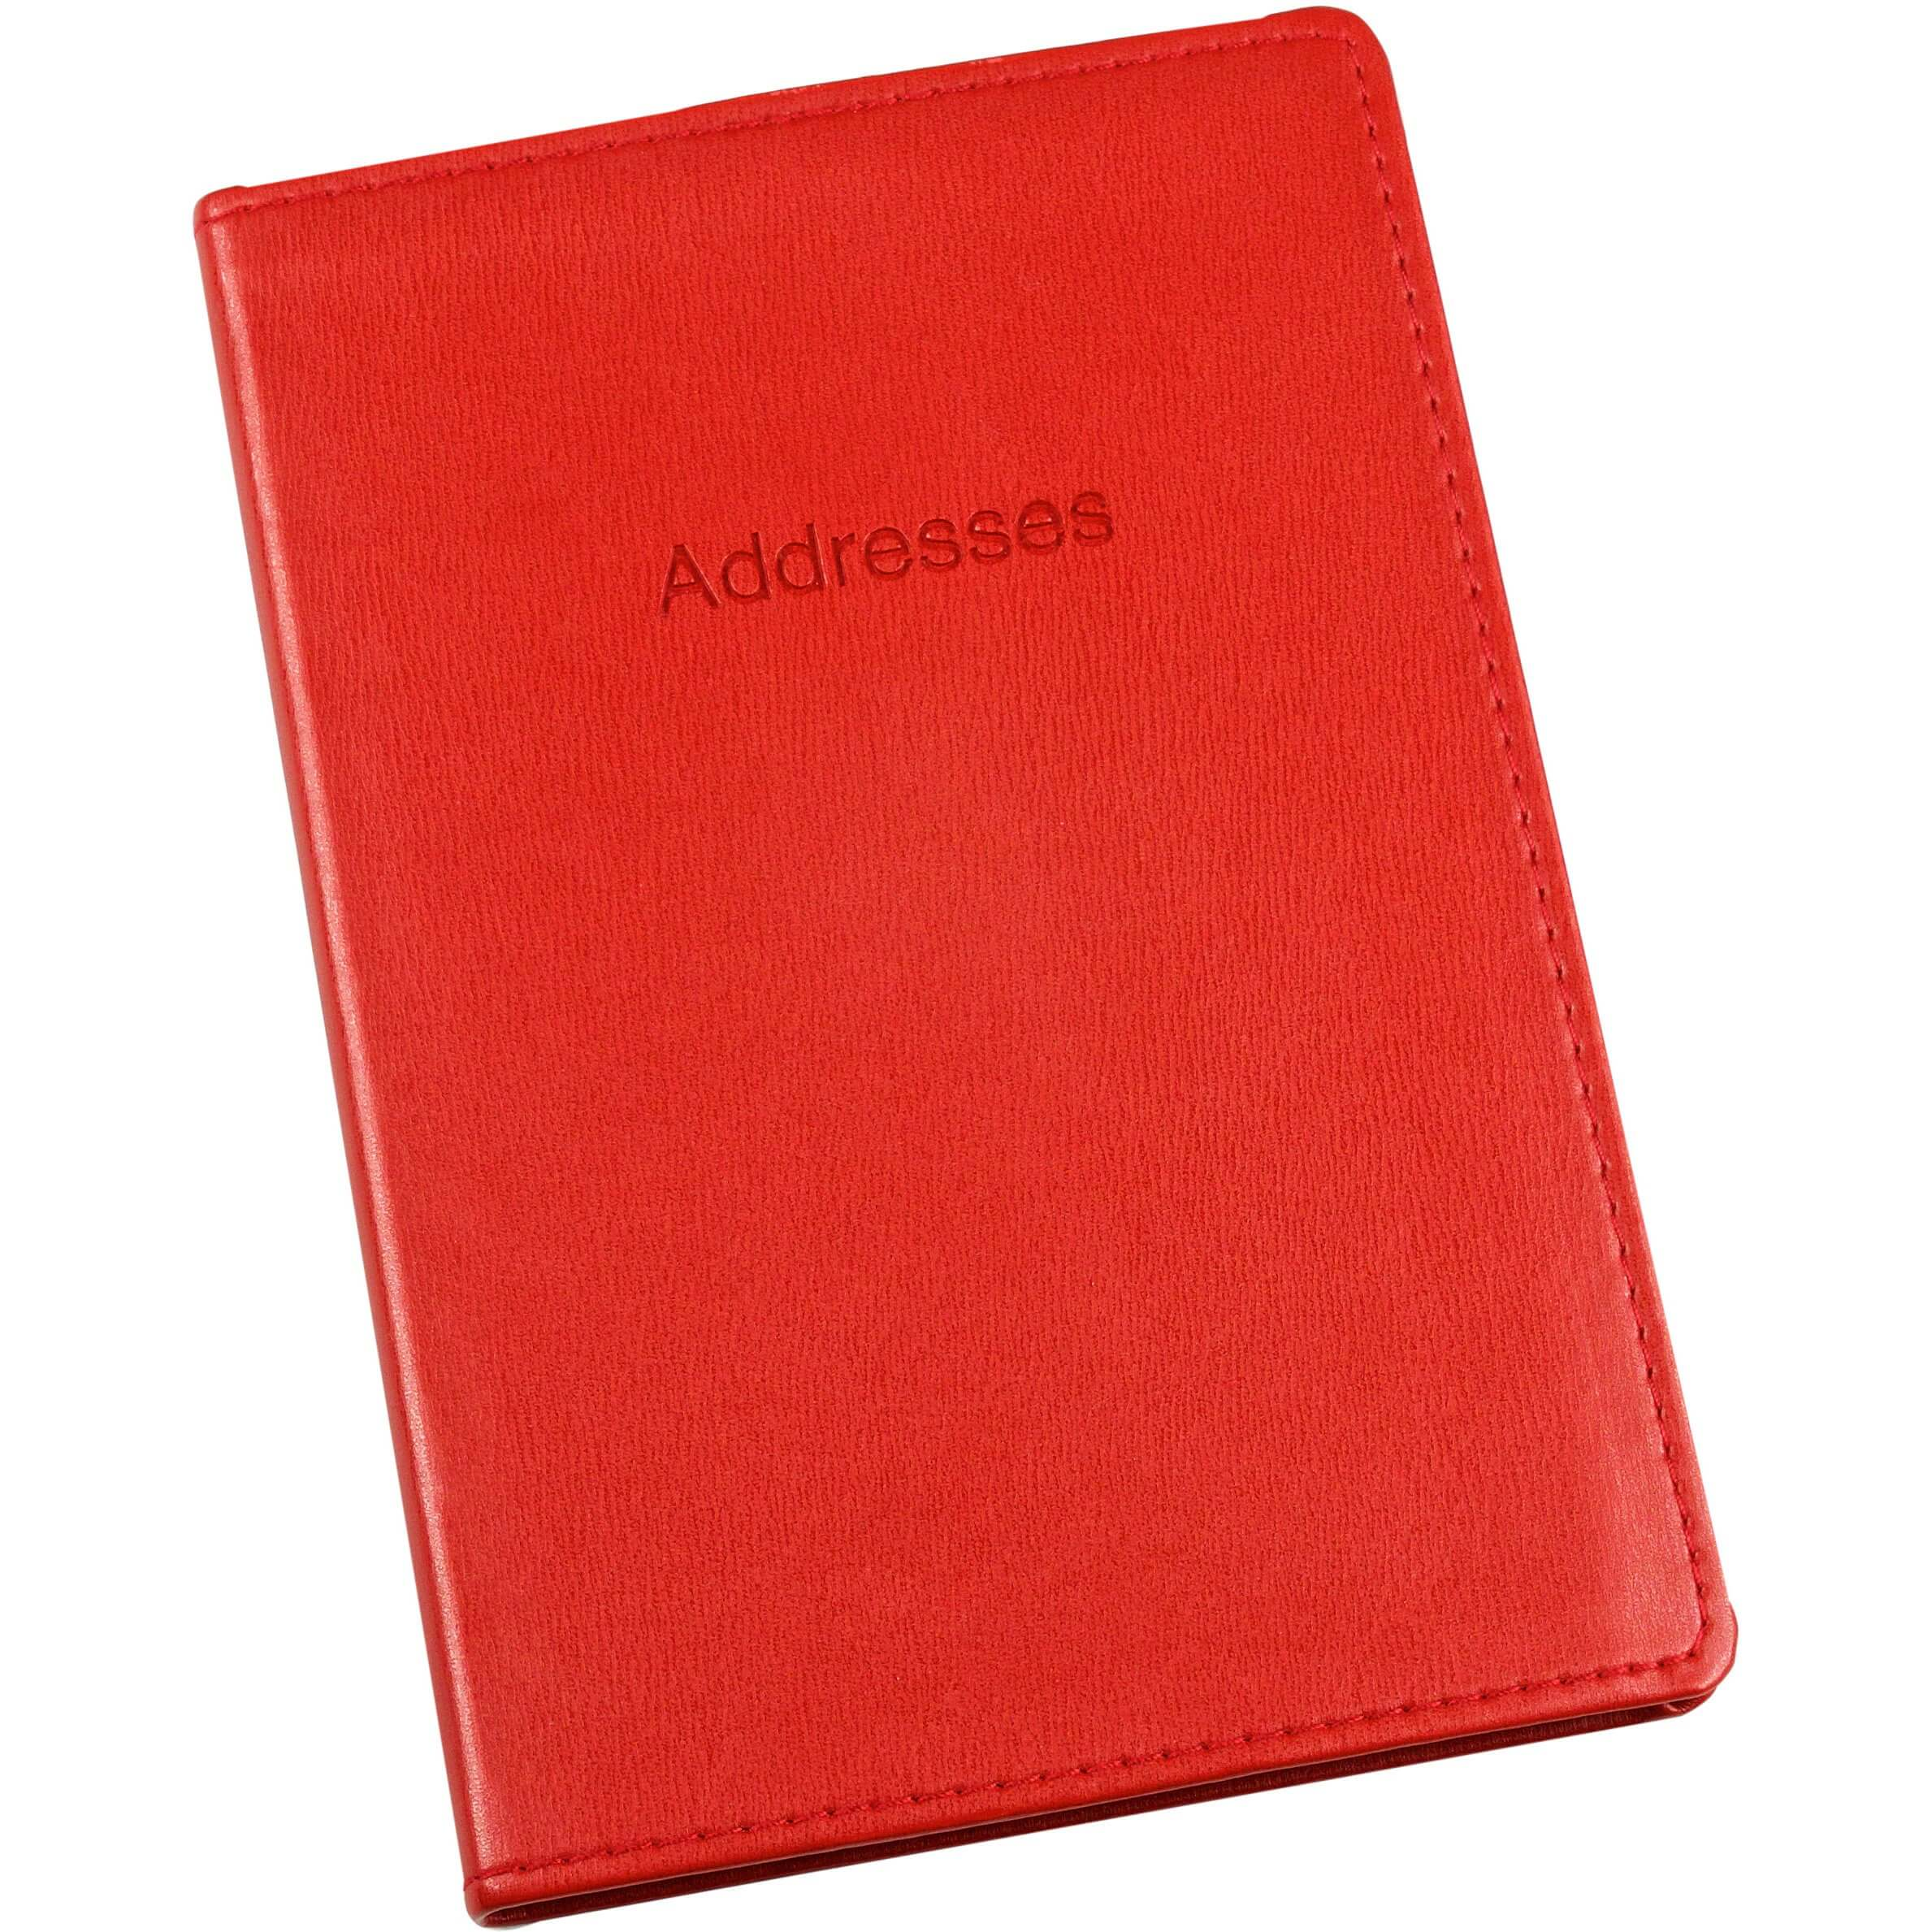 Esposti Address Book - Soft Leather Feel Stitched Cover - Red - Size 131 x 196mm